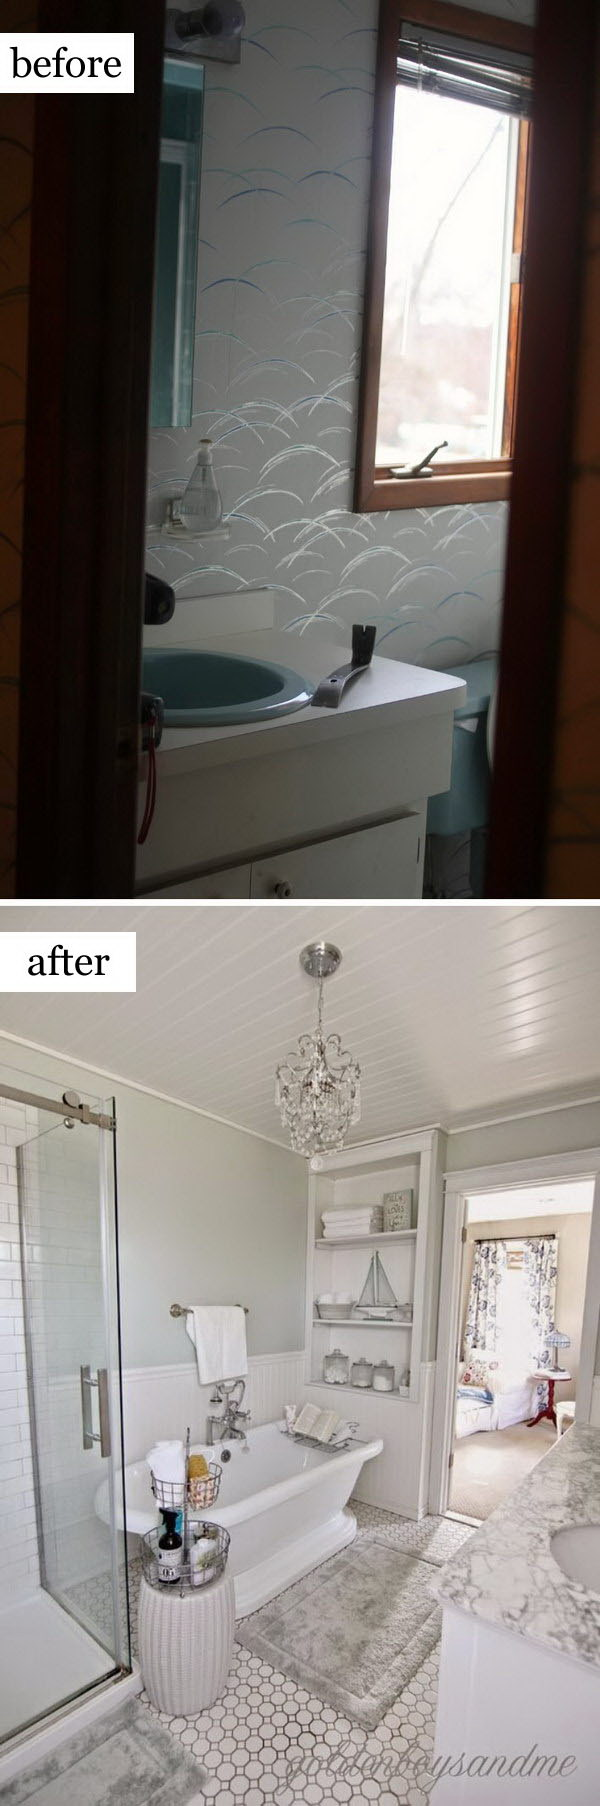 before and after makeovers 20 most beautiful bathroom remodeling ideas noted list. Black Bedroom Furniture Sets. Home Design Ideas